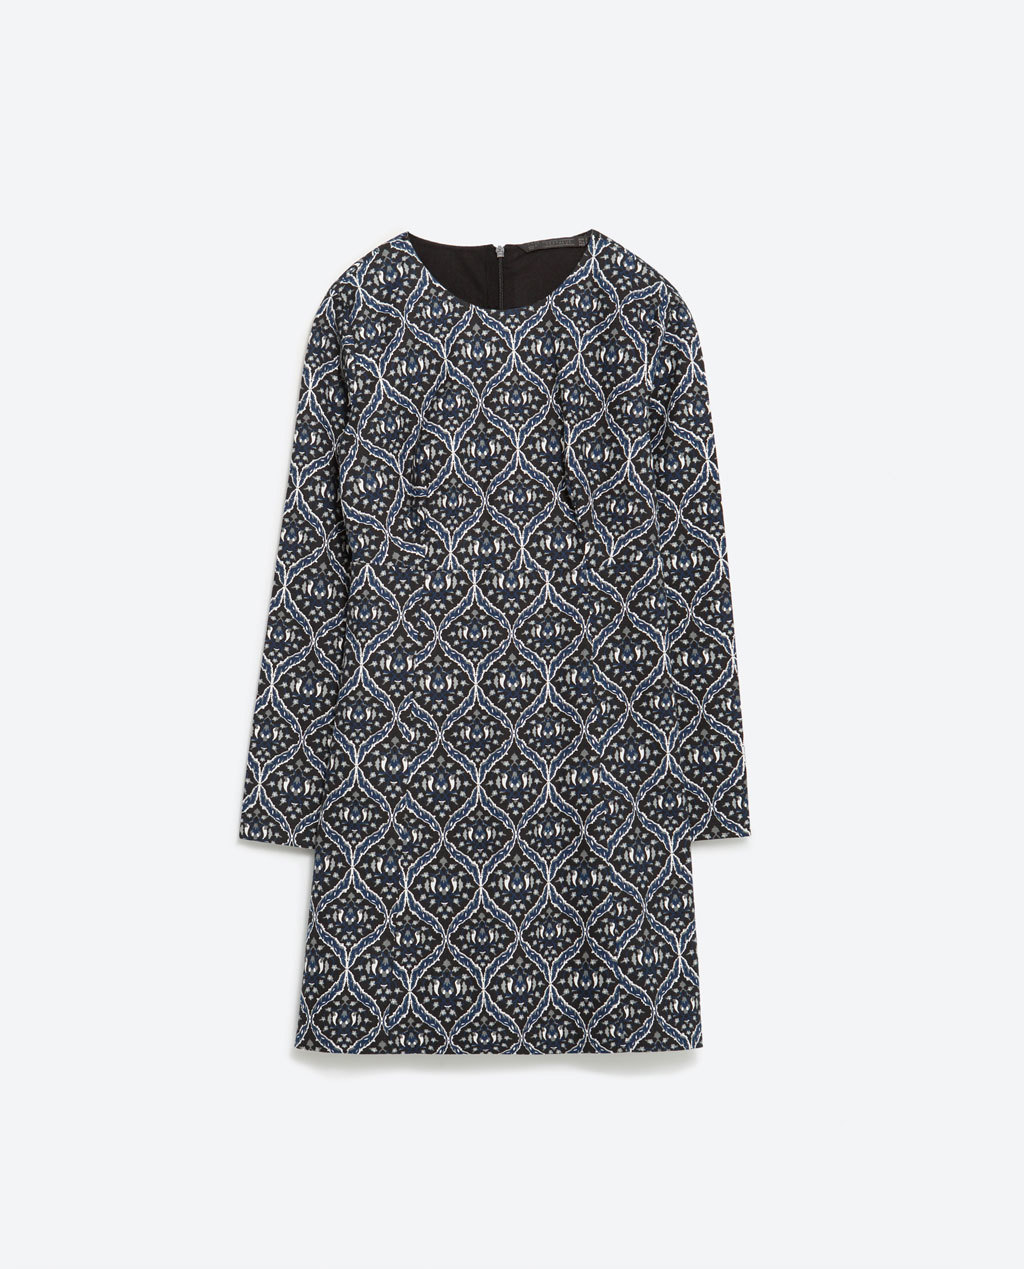 Printed Dress - style: shift; length: mid thigh; neckline: round neck; secondary colour: ivory/cream; predominant colour: black; occasions: casual, creative work; fit: soft a-line; fibres: cotton - stretch; sleeve length: long sleeve; sleeve style: standard; texture group: crepes; pattern type: fabric; pattern size: big & busy; pattern: patterned/print; season: a/w 2015; wardrobe: highlight